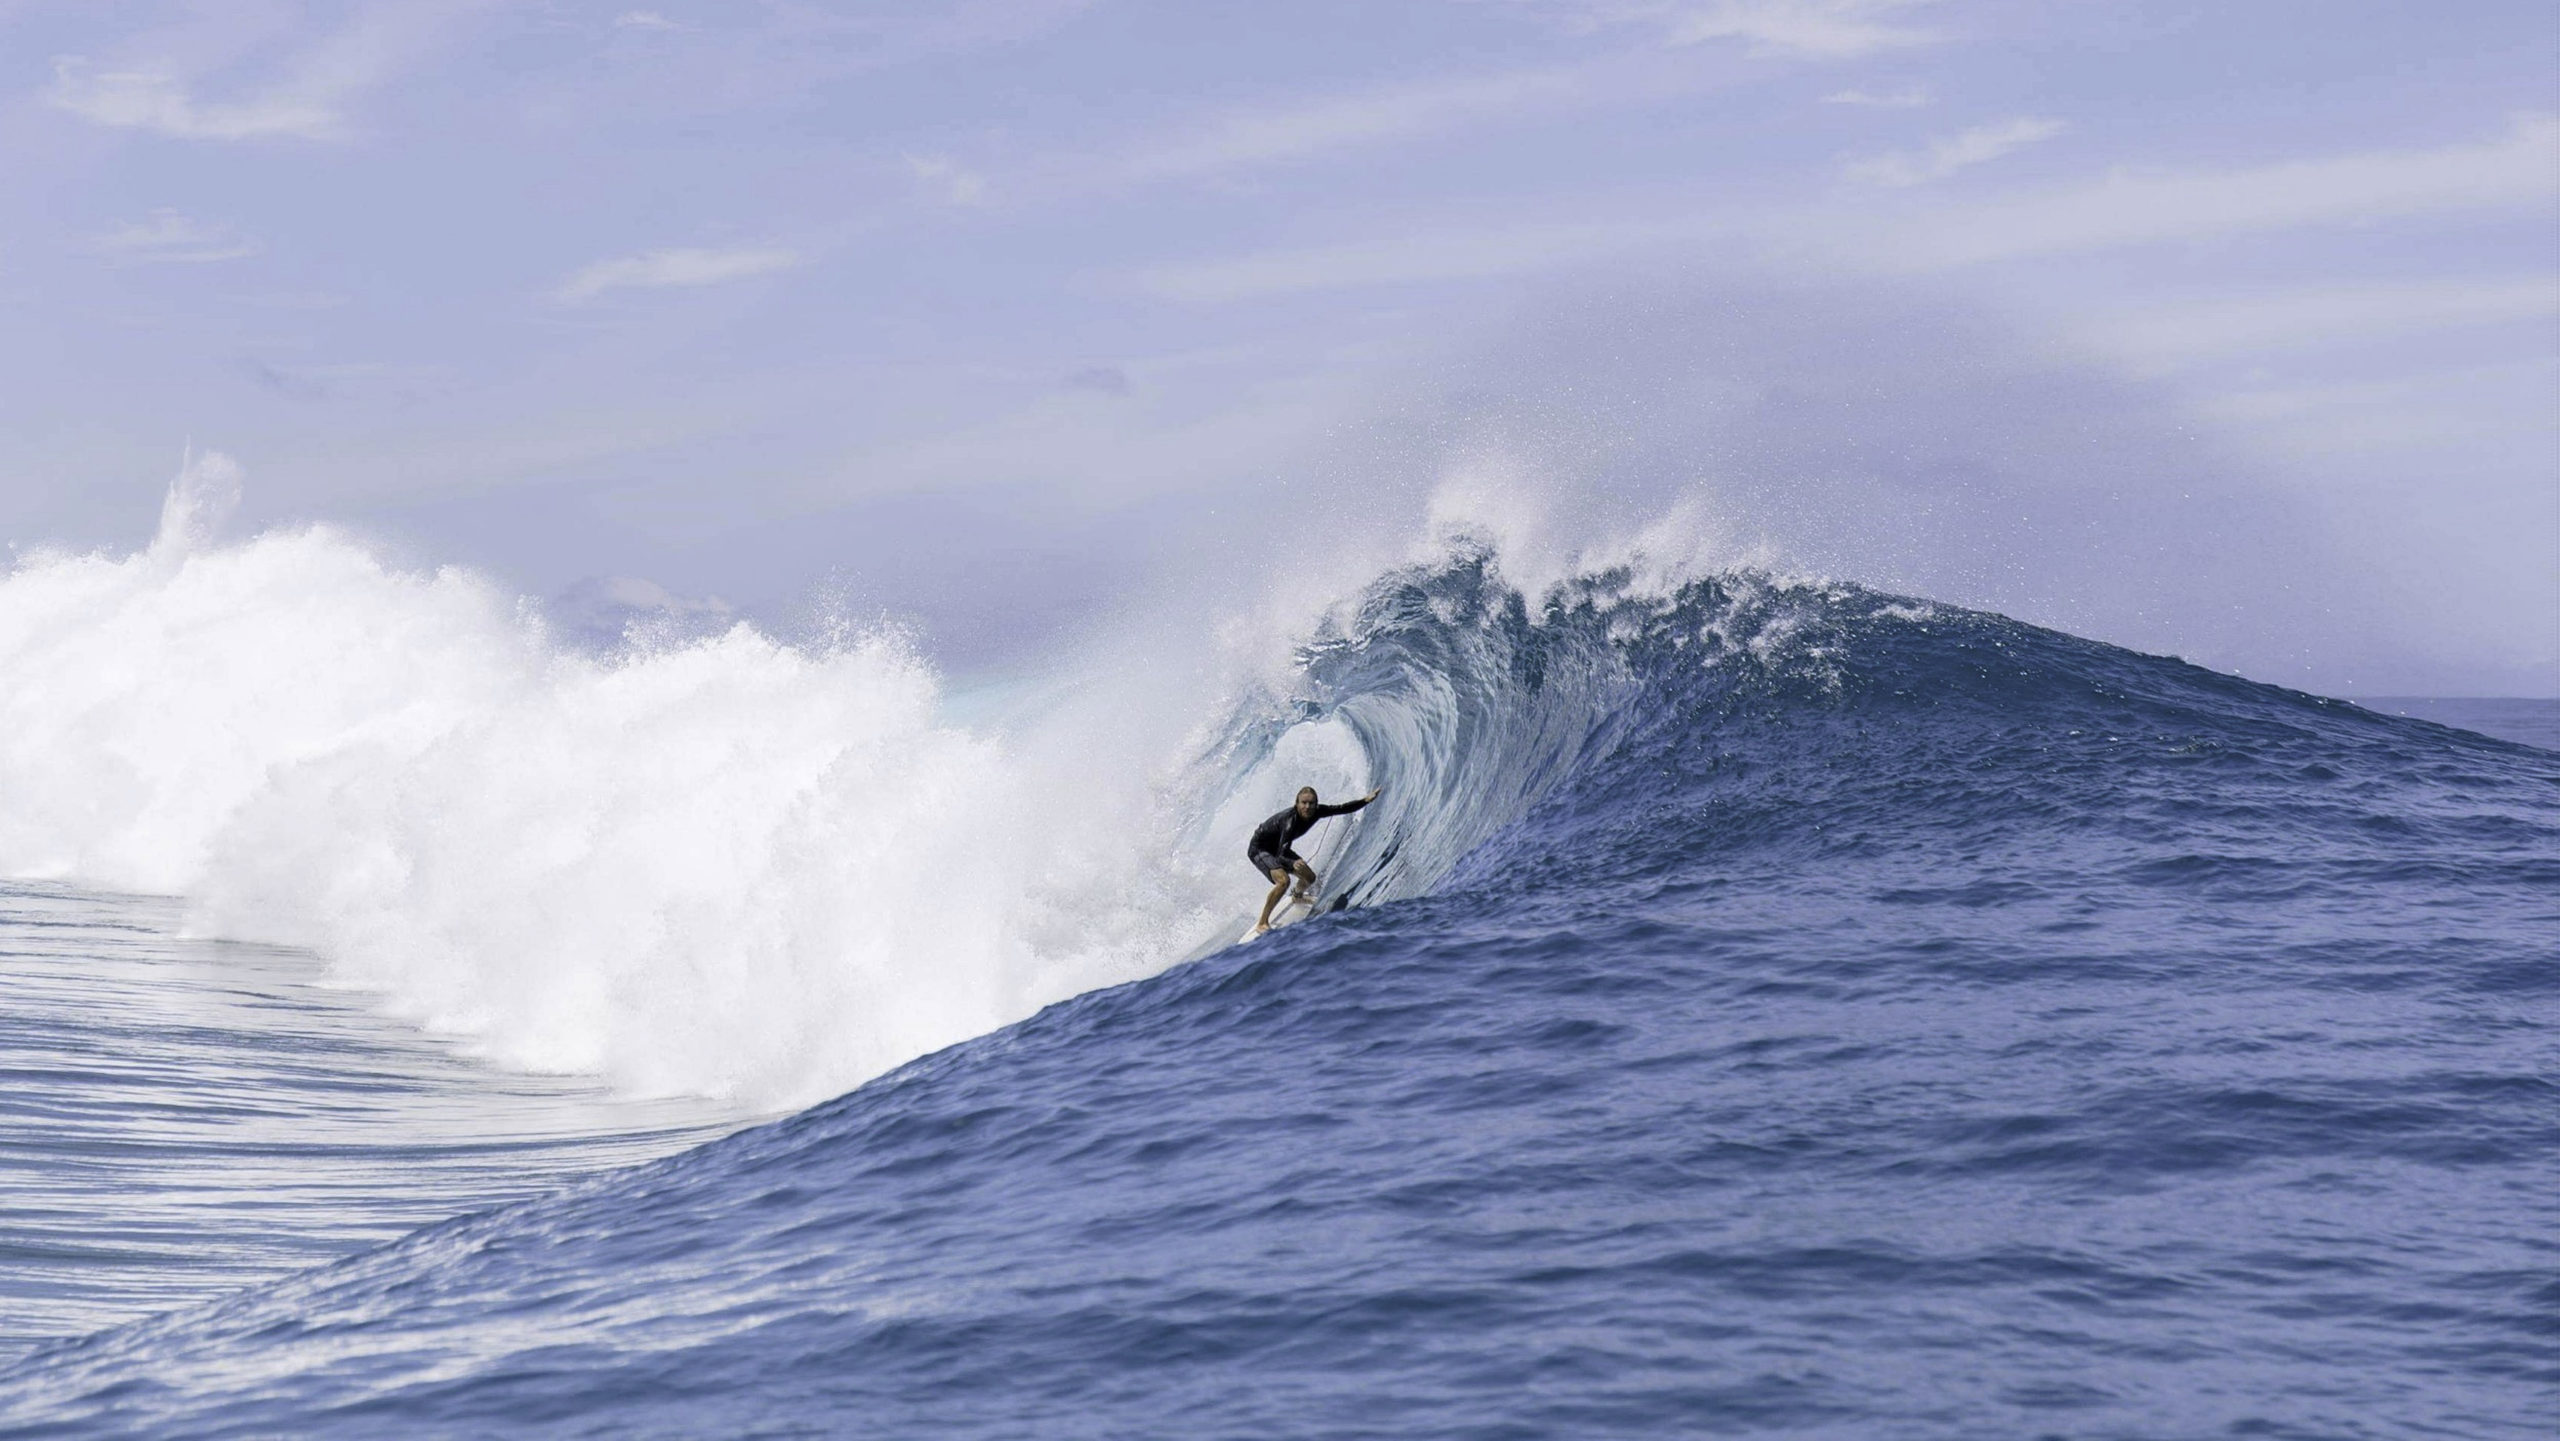 Mick Hoult in Teahupoo